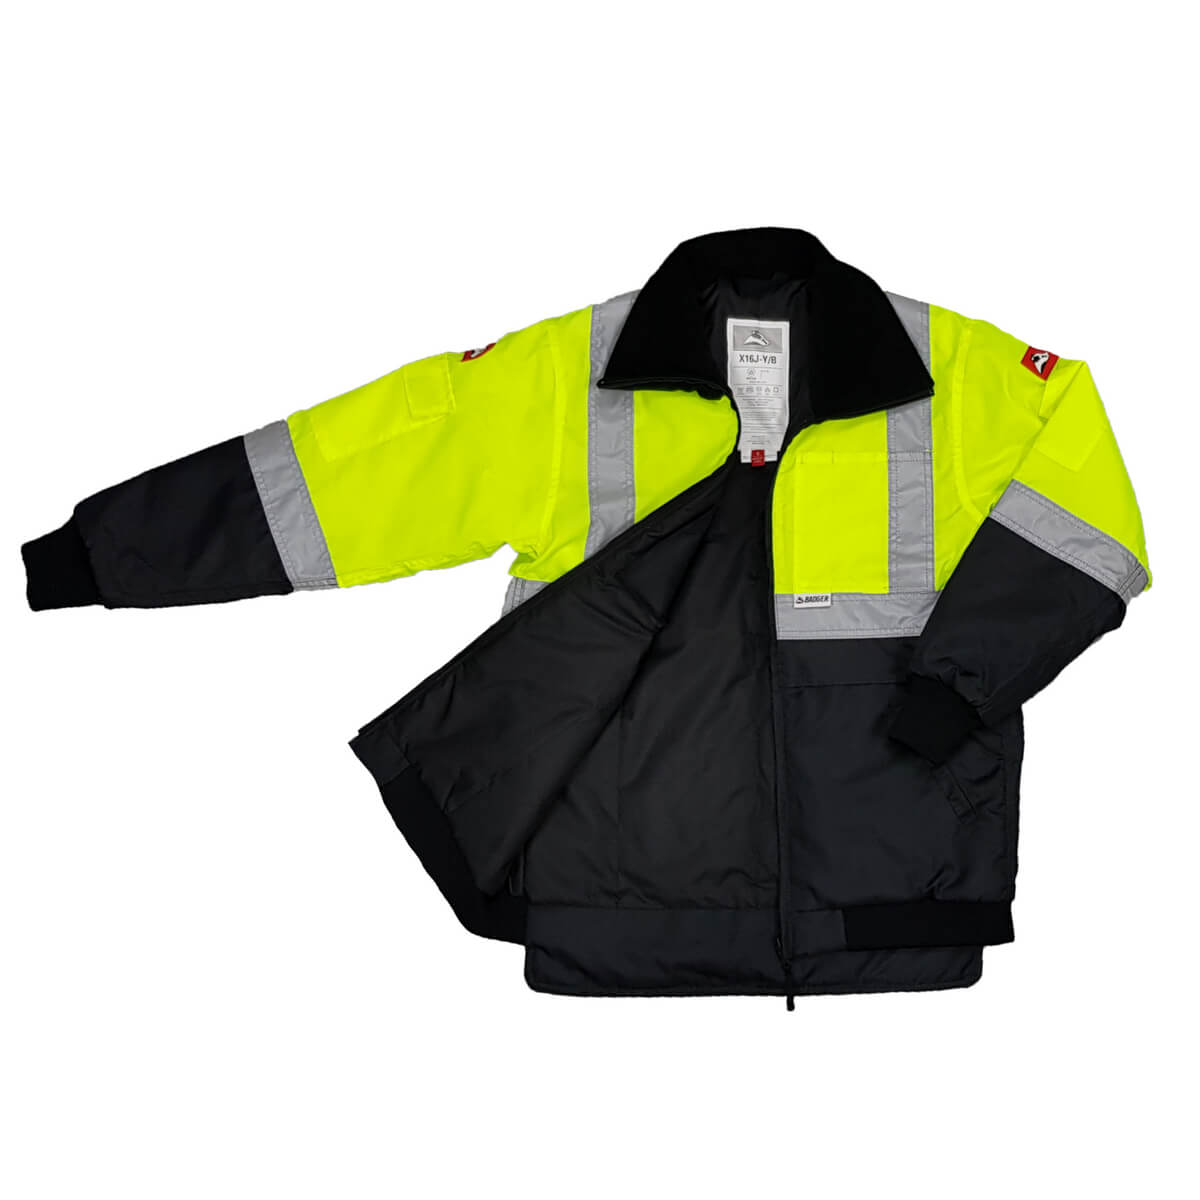 Badger Sub Zero Industry Jacket Badger Australia